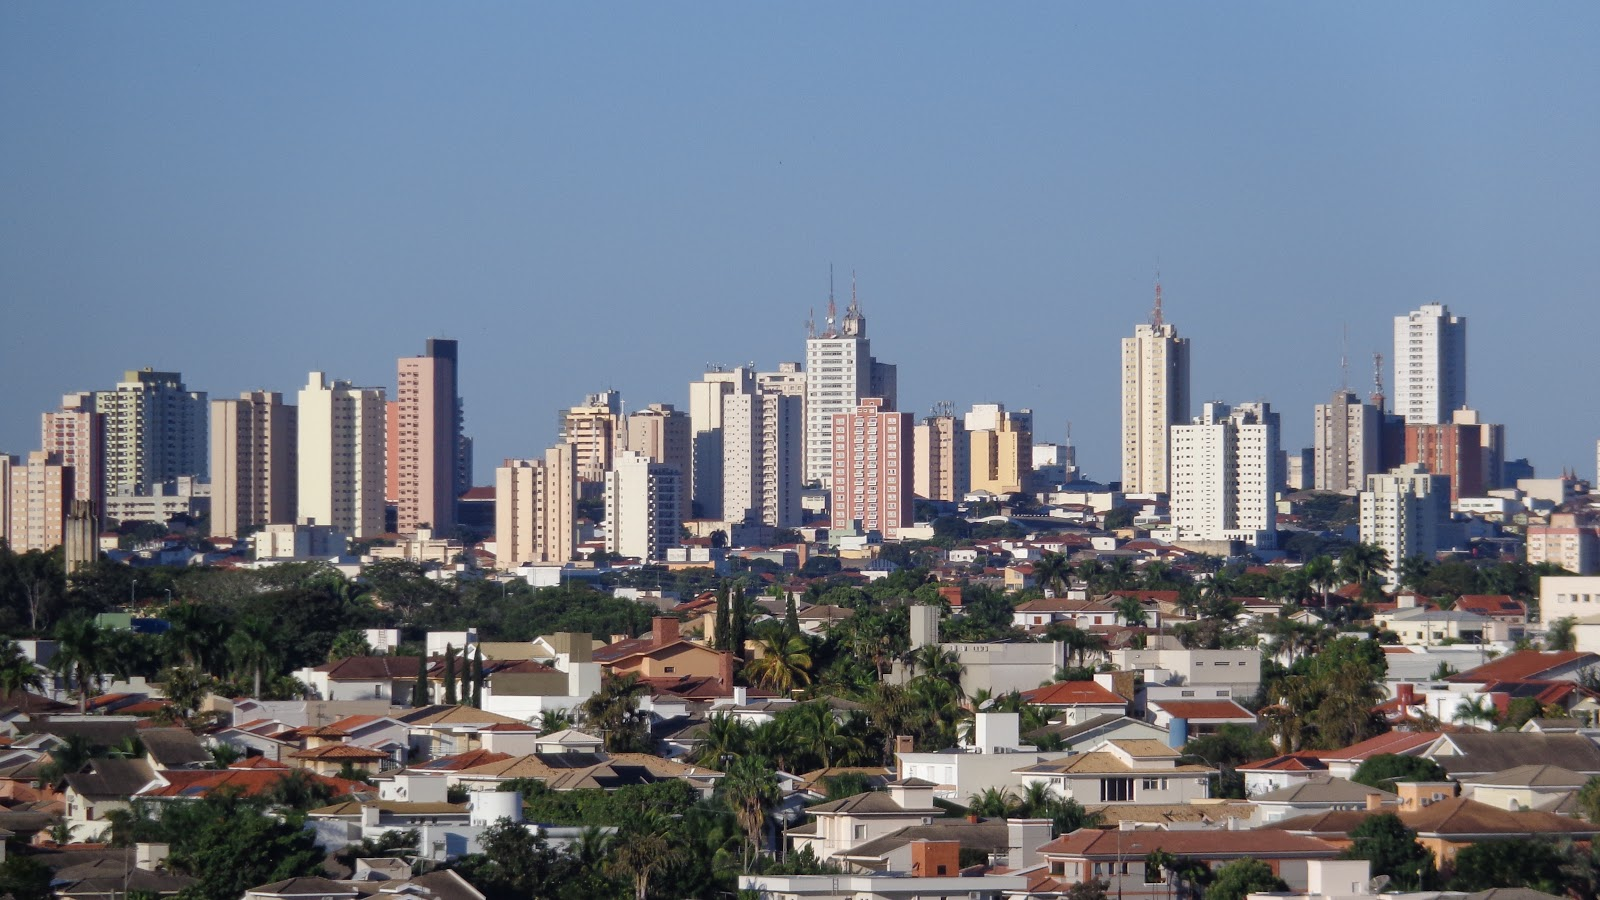 Presidente Prudente | Capital do Oeste Paulista